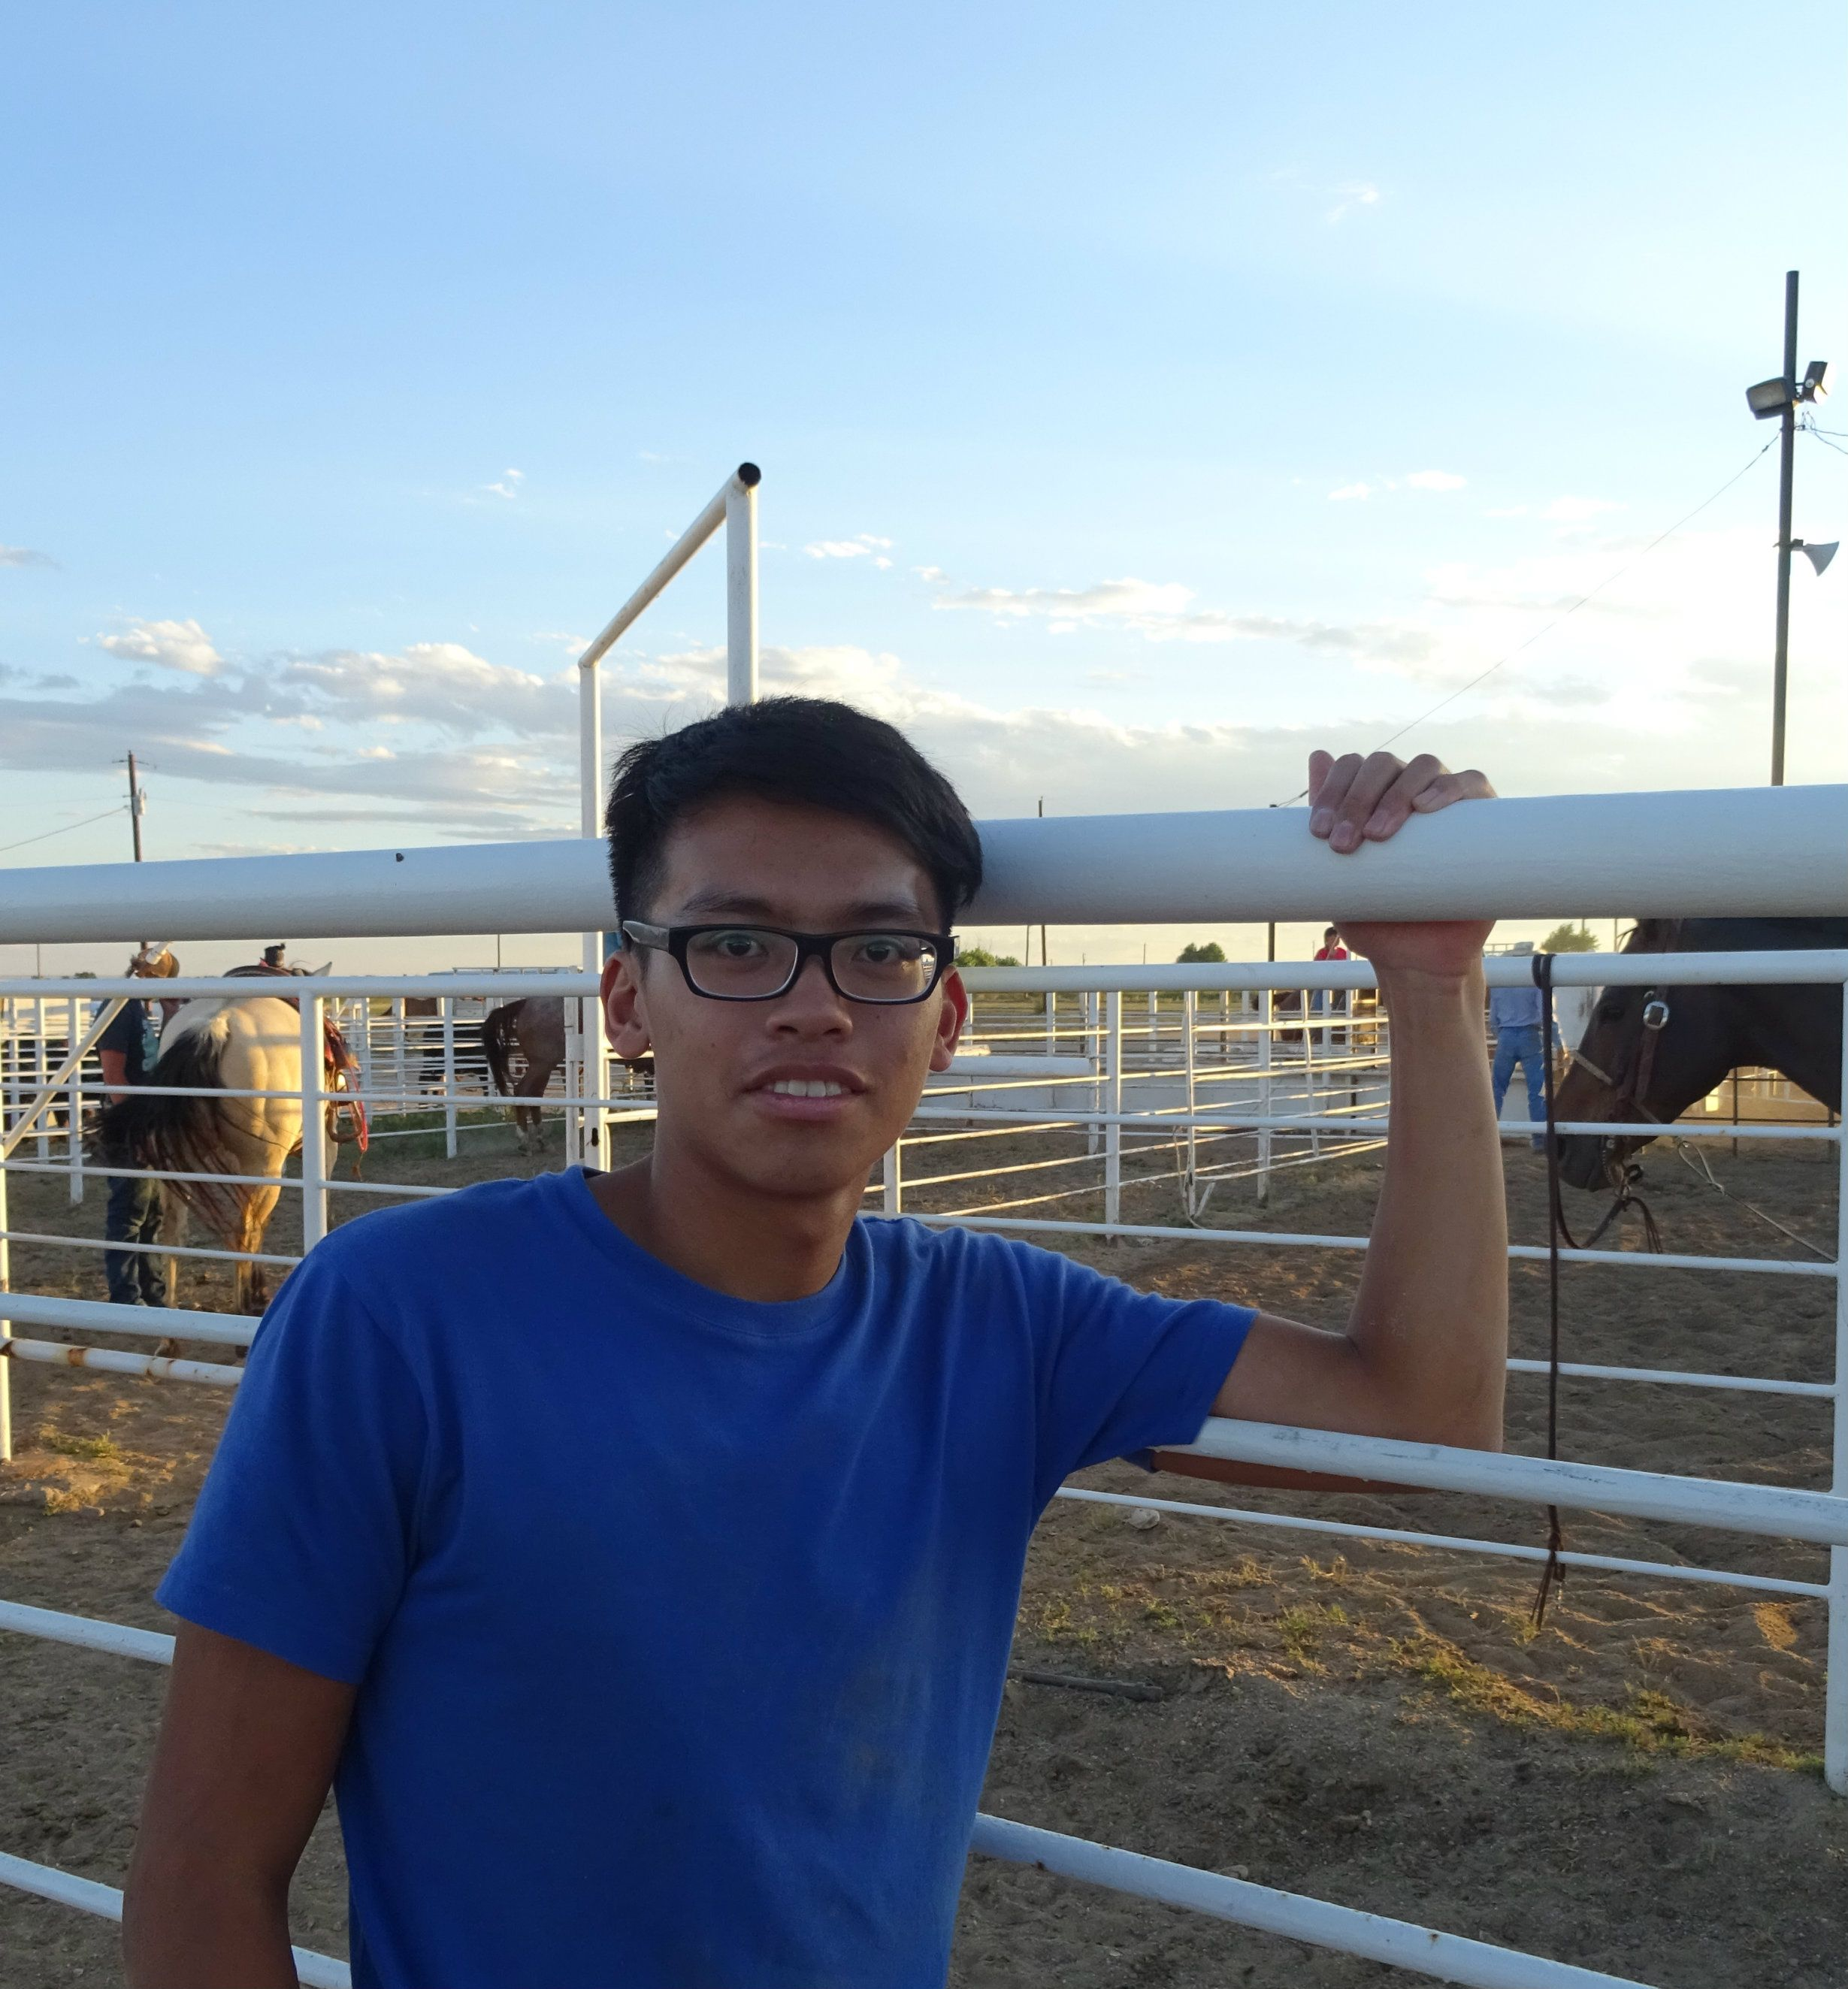 Ethan ( Korea ) went to watch cowboys at the fairgrounds on his time off.